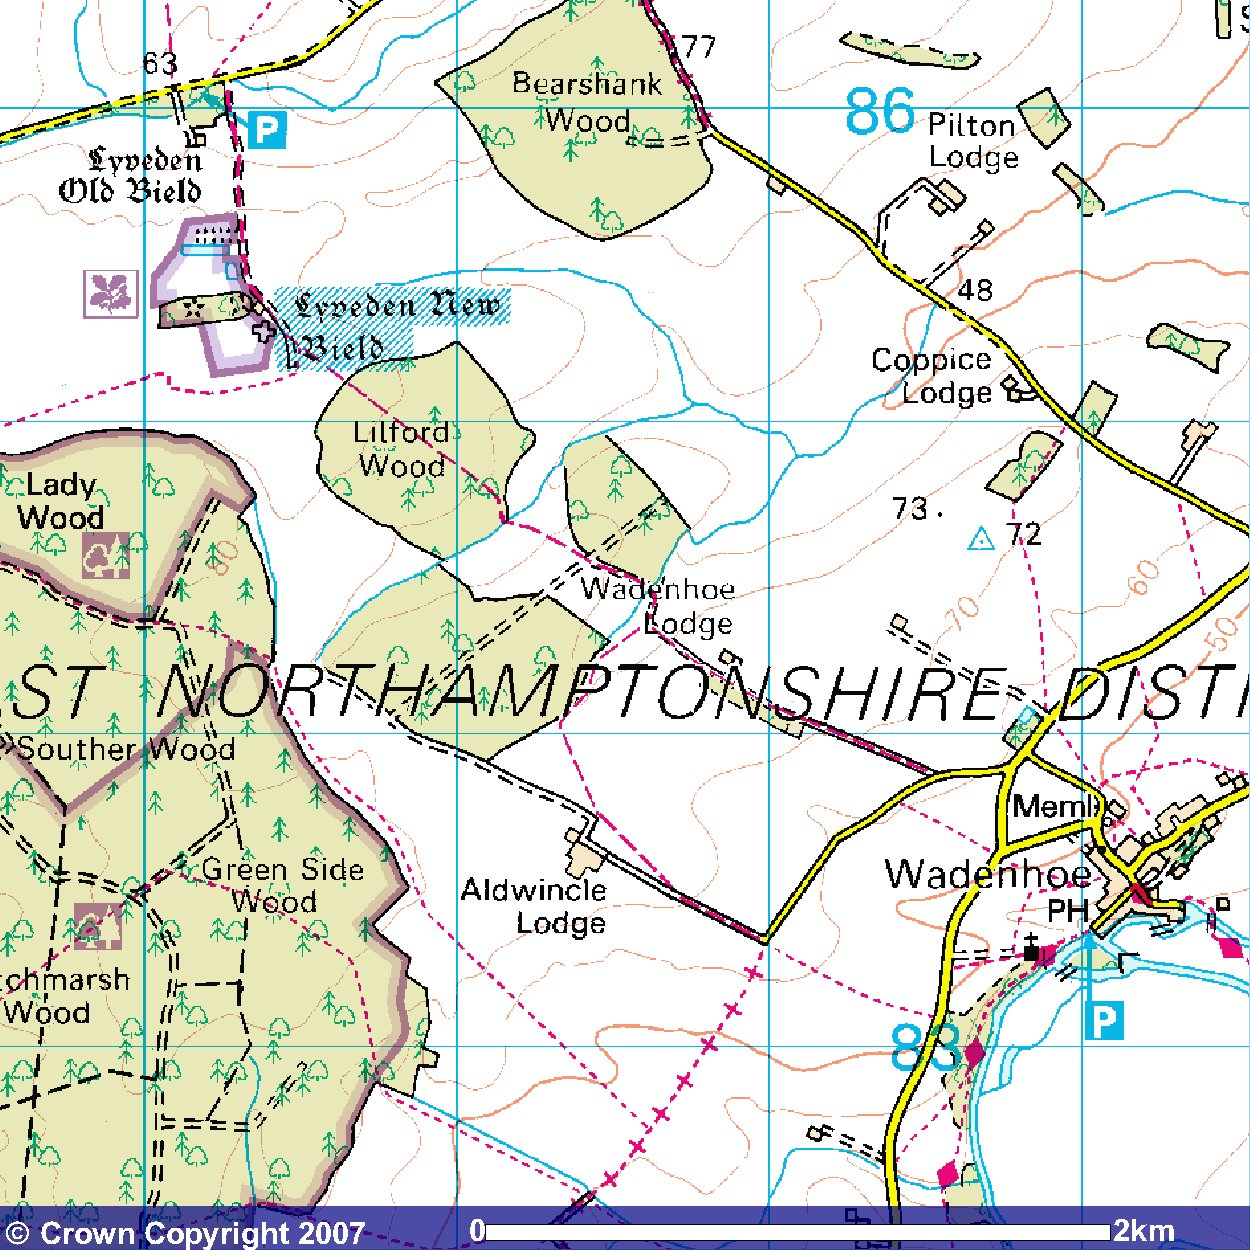 Location of Cottage on an OS Map